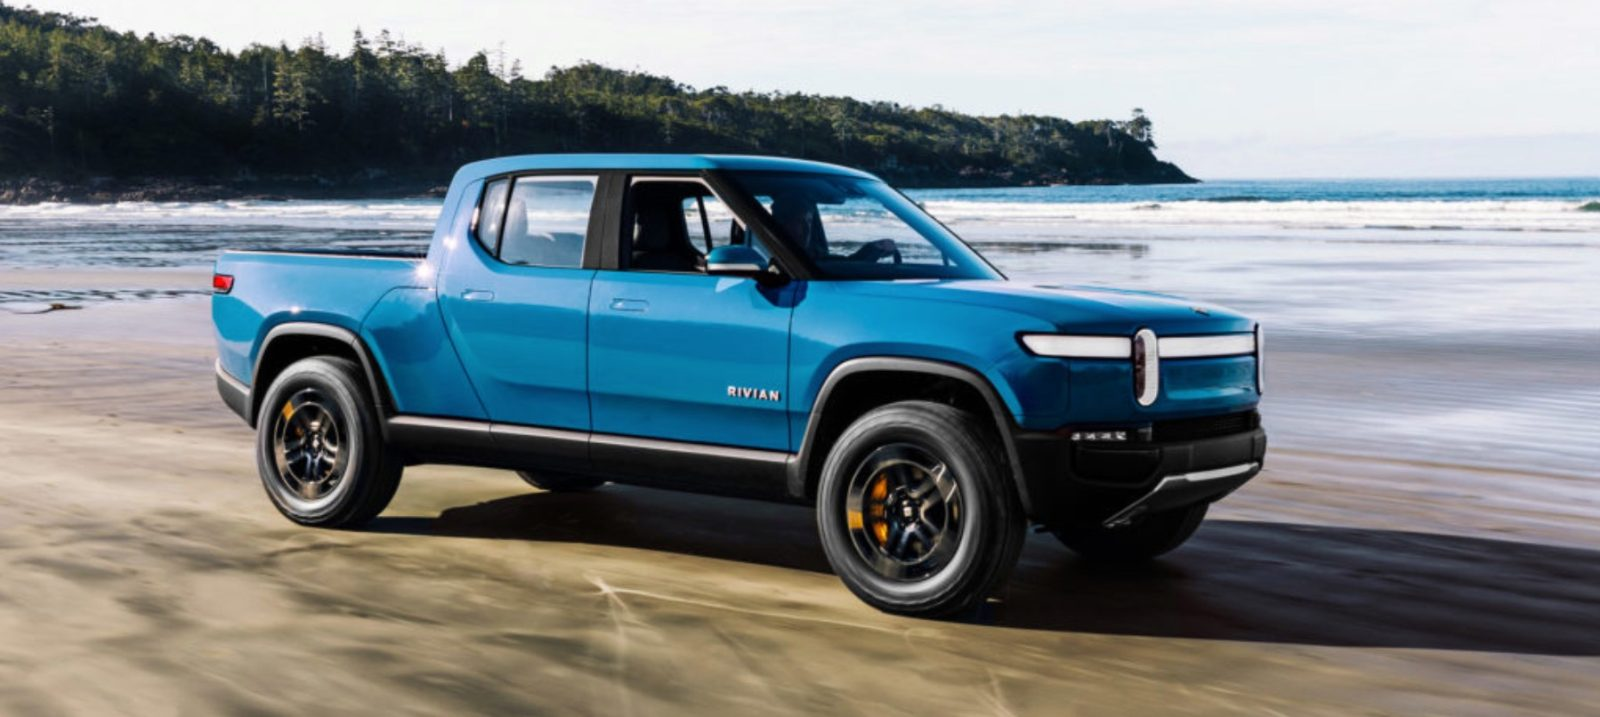 Rivian will start under expected $69,000 price – Cybertruck effect in action?